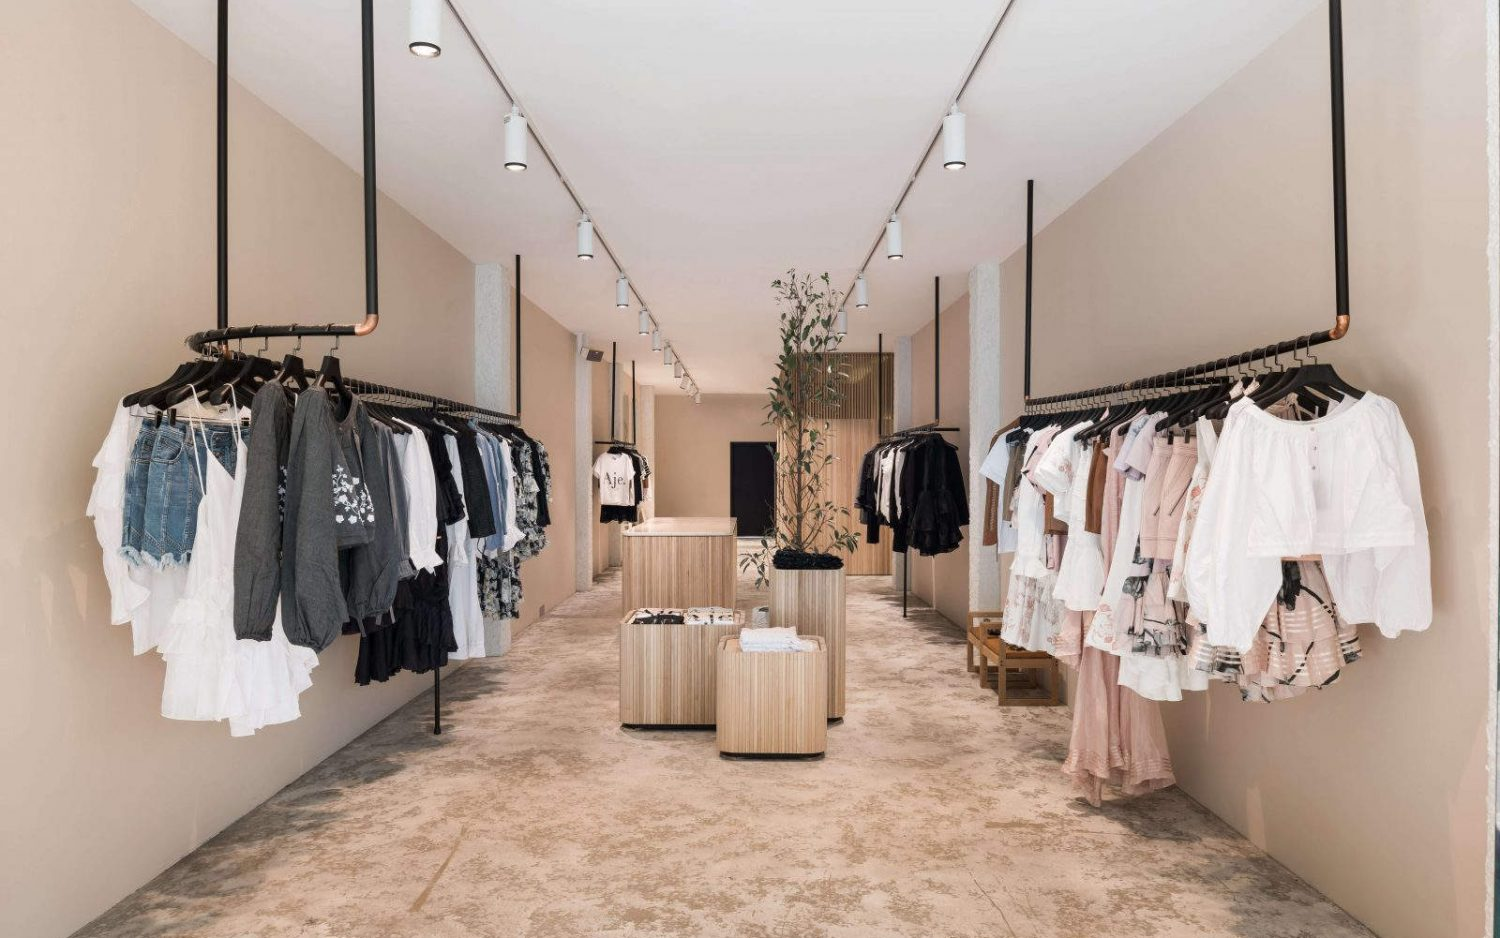 Fashion Showroom Ladies Dress Shop Interior Design   Boutique Store Design,  Retail Shop Interior Design Ideas